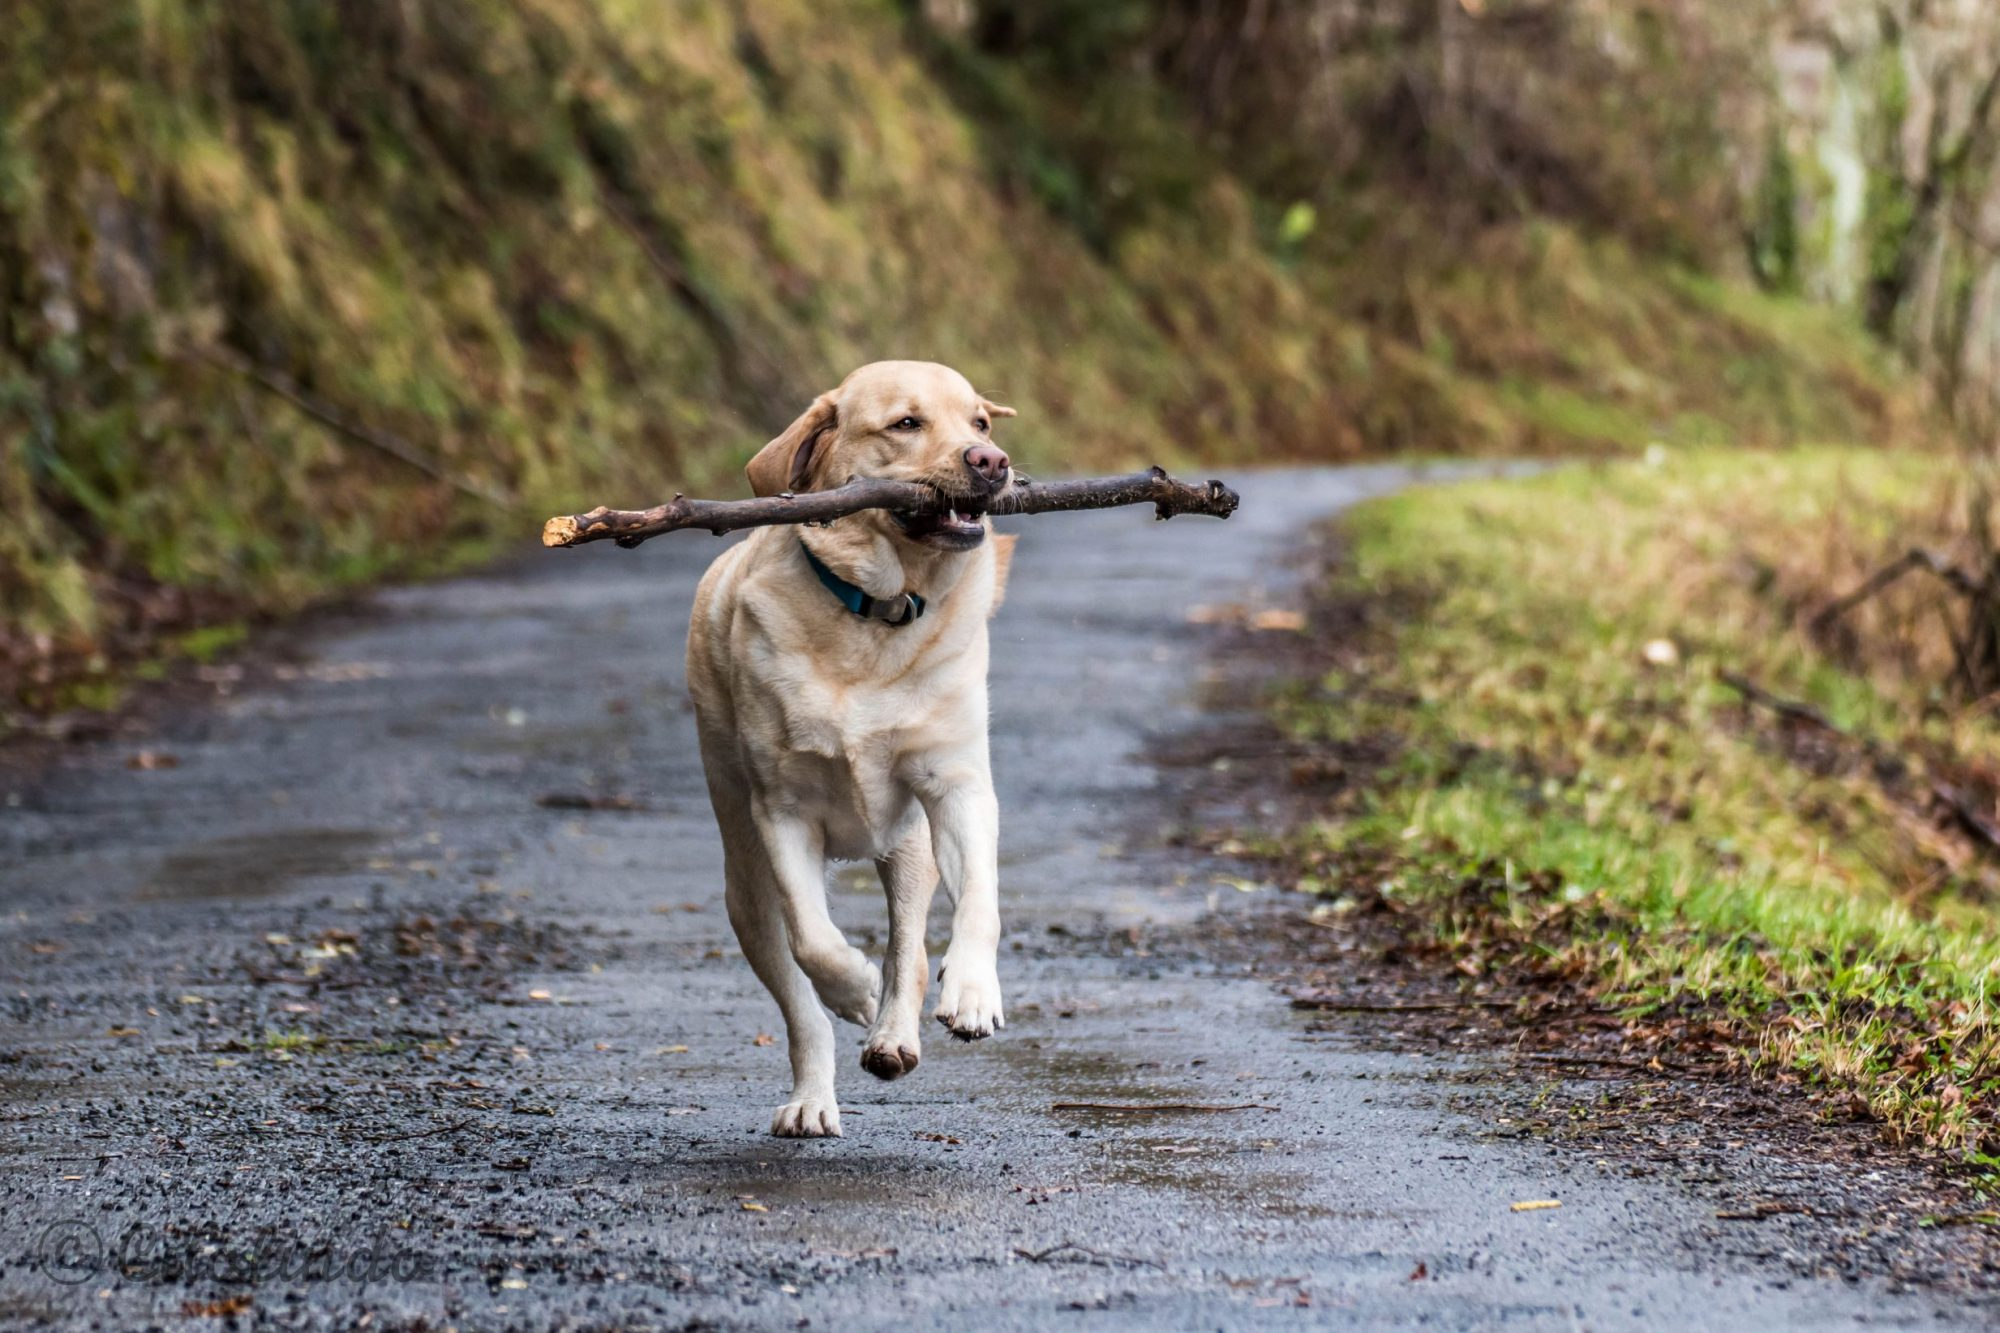 A dog carries a big stick in its mouth.